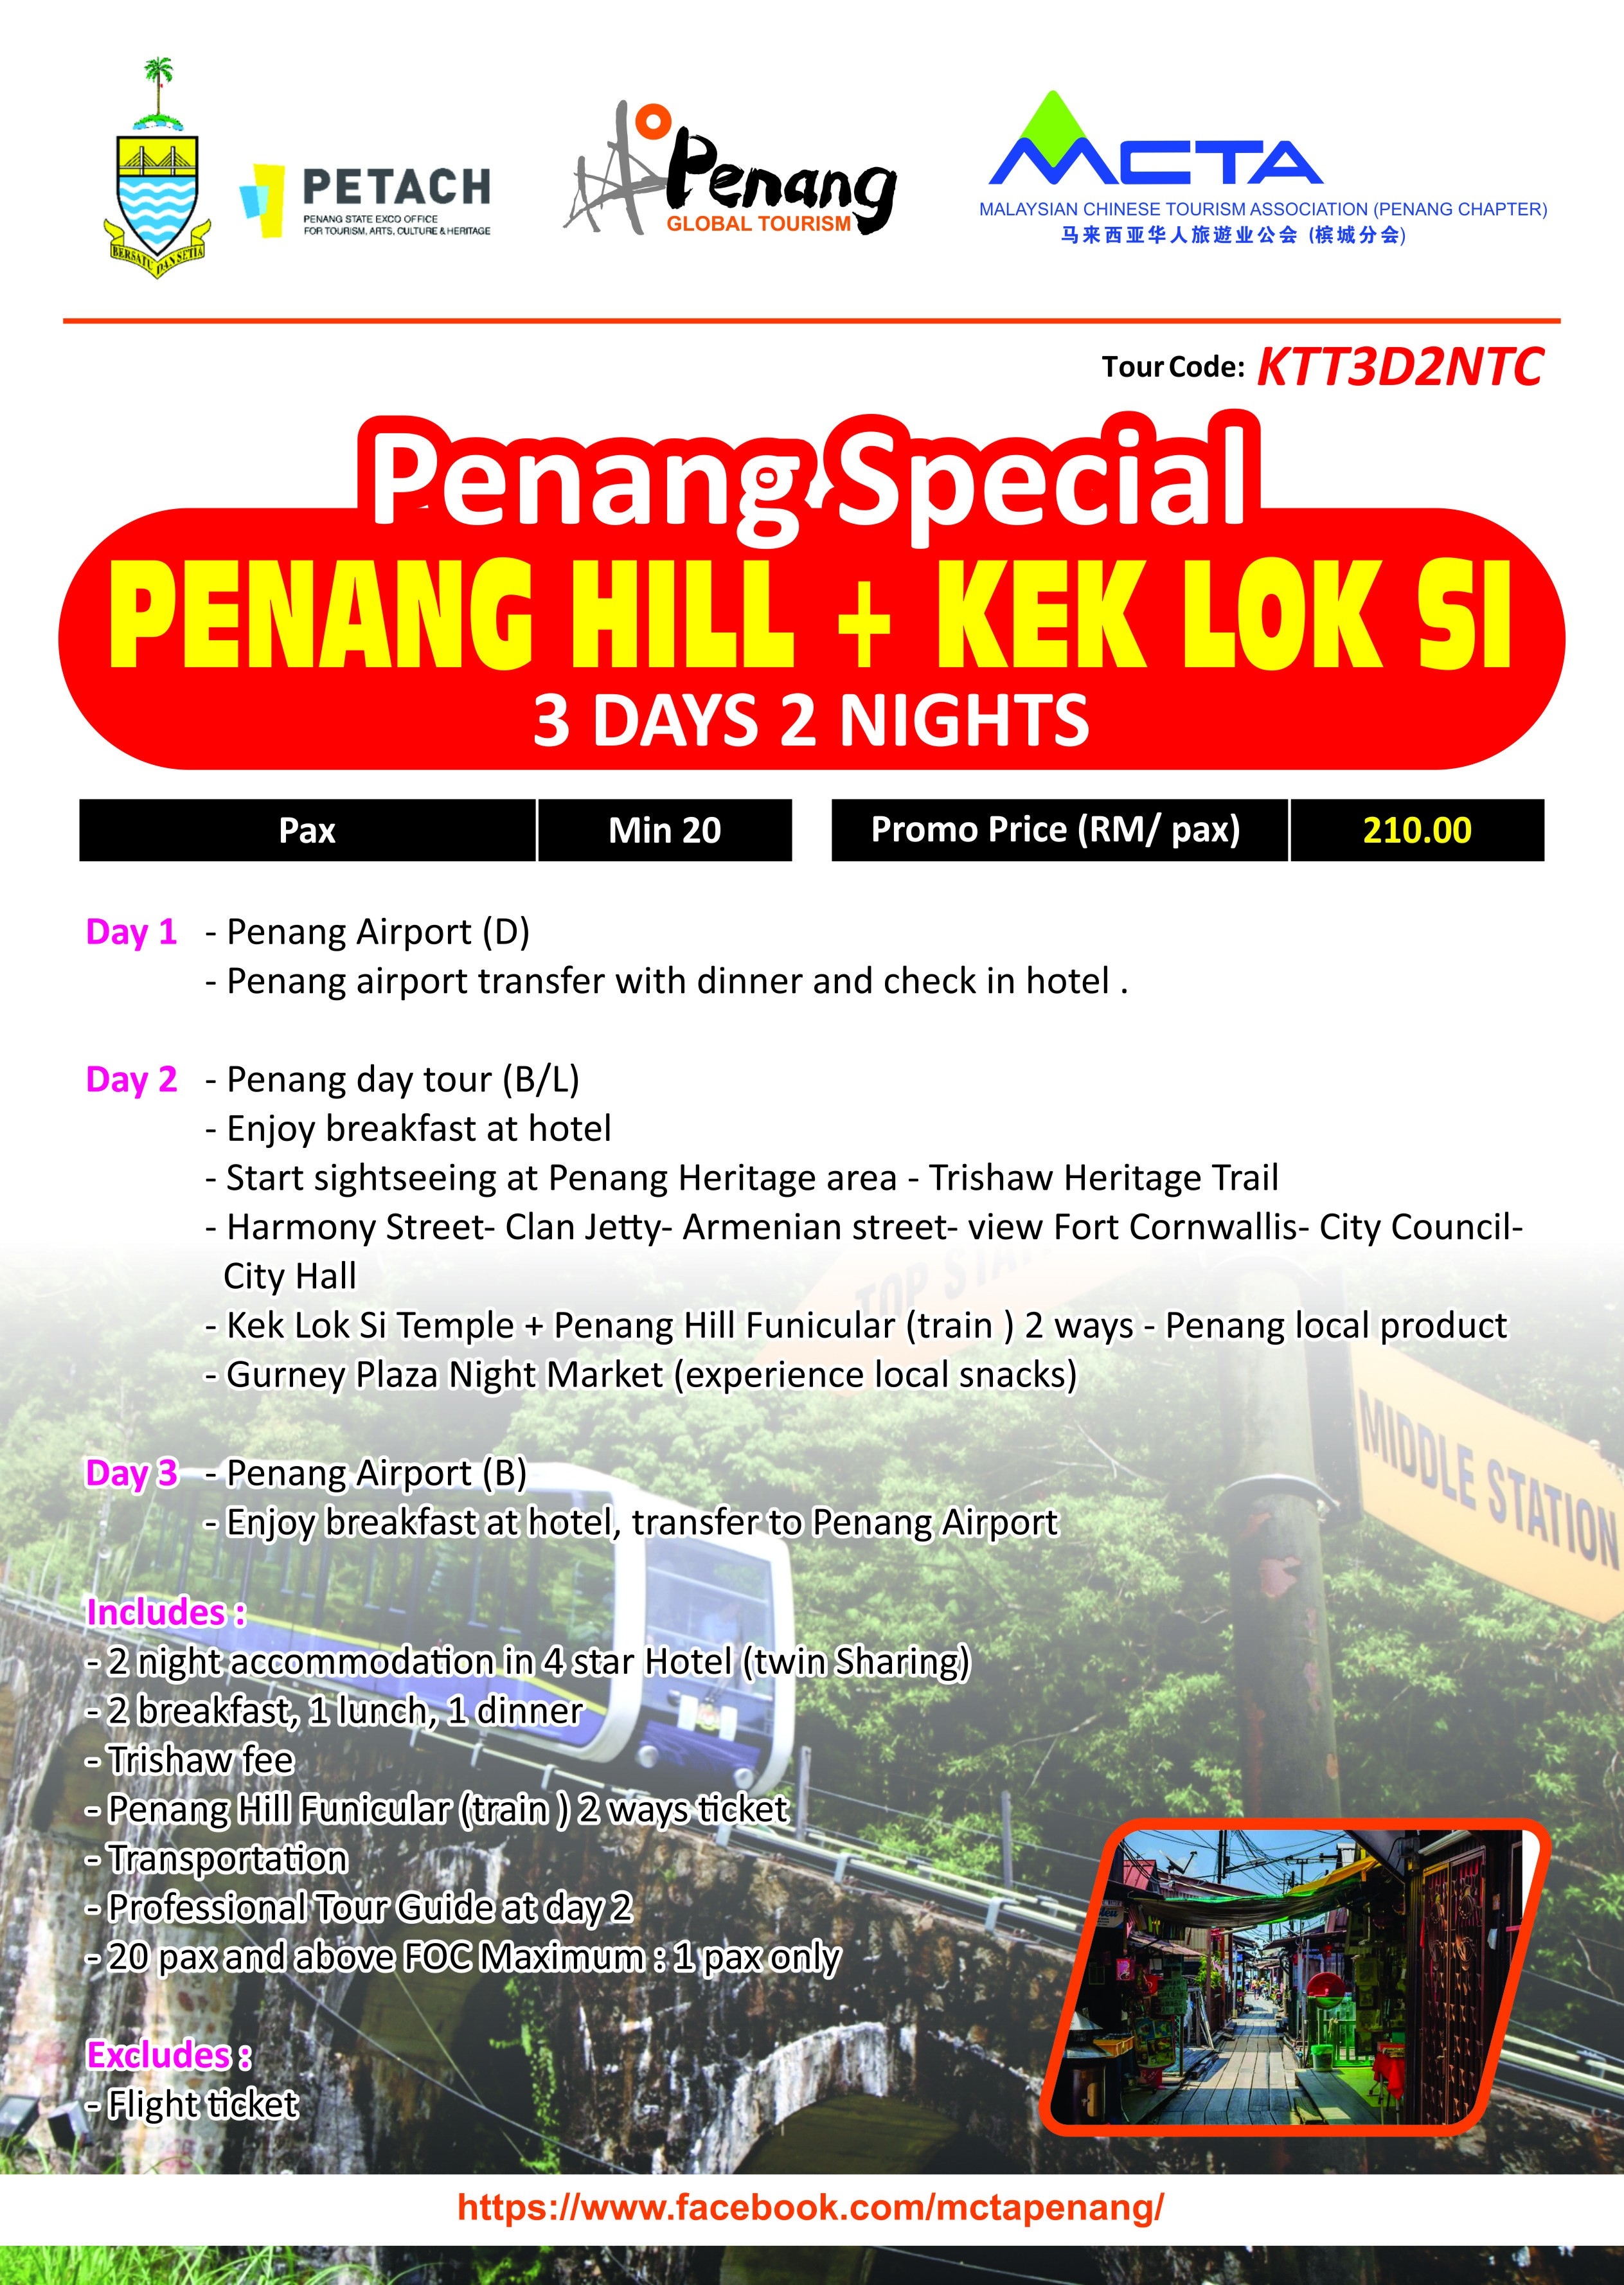 Penang Special - Penang Hill + Kek Lok Si (3 Days 2 Nights)